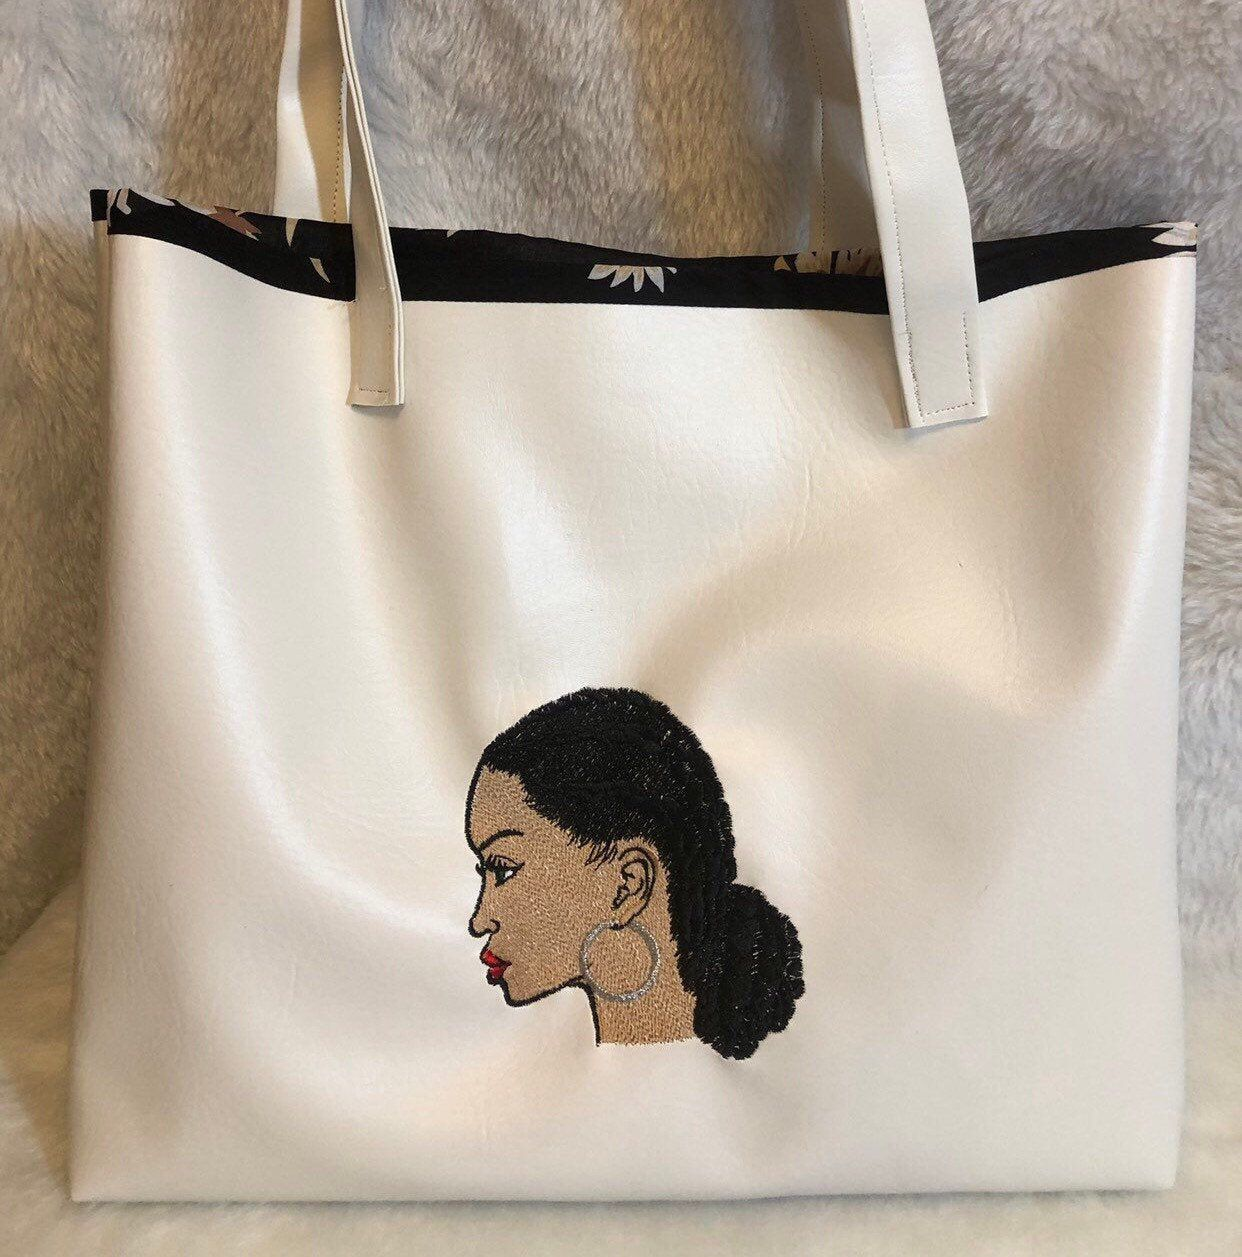 Excited to share this item from my etsy shop African